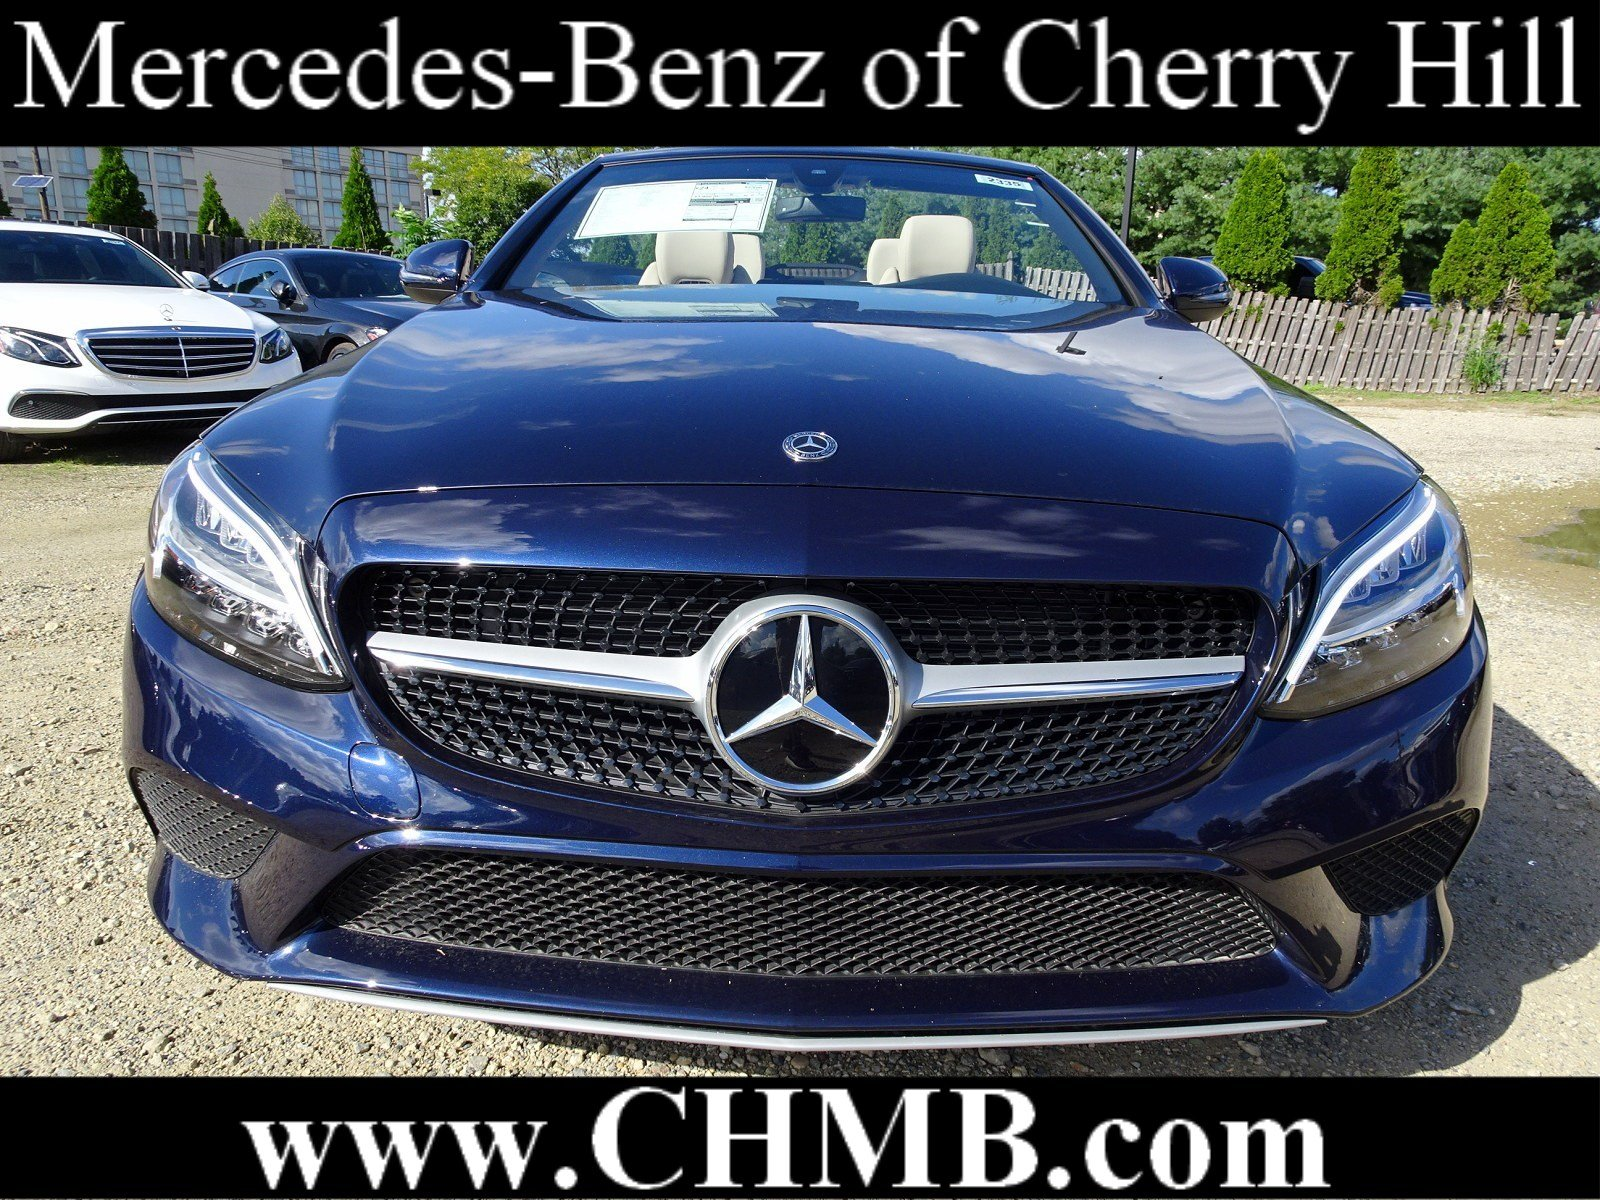 New 2019 Mercedes Benz C Class C 300 CABRIOLET in Cherry Hill M2335